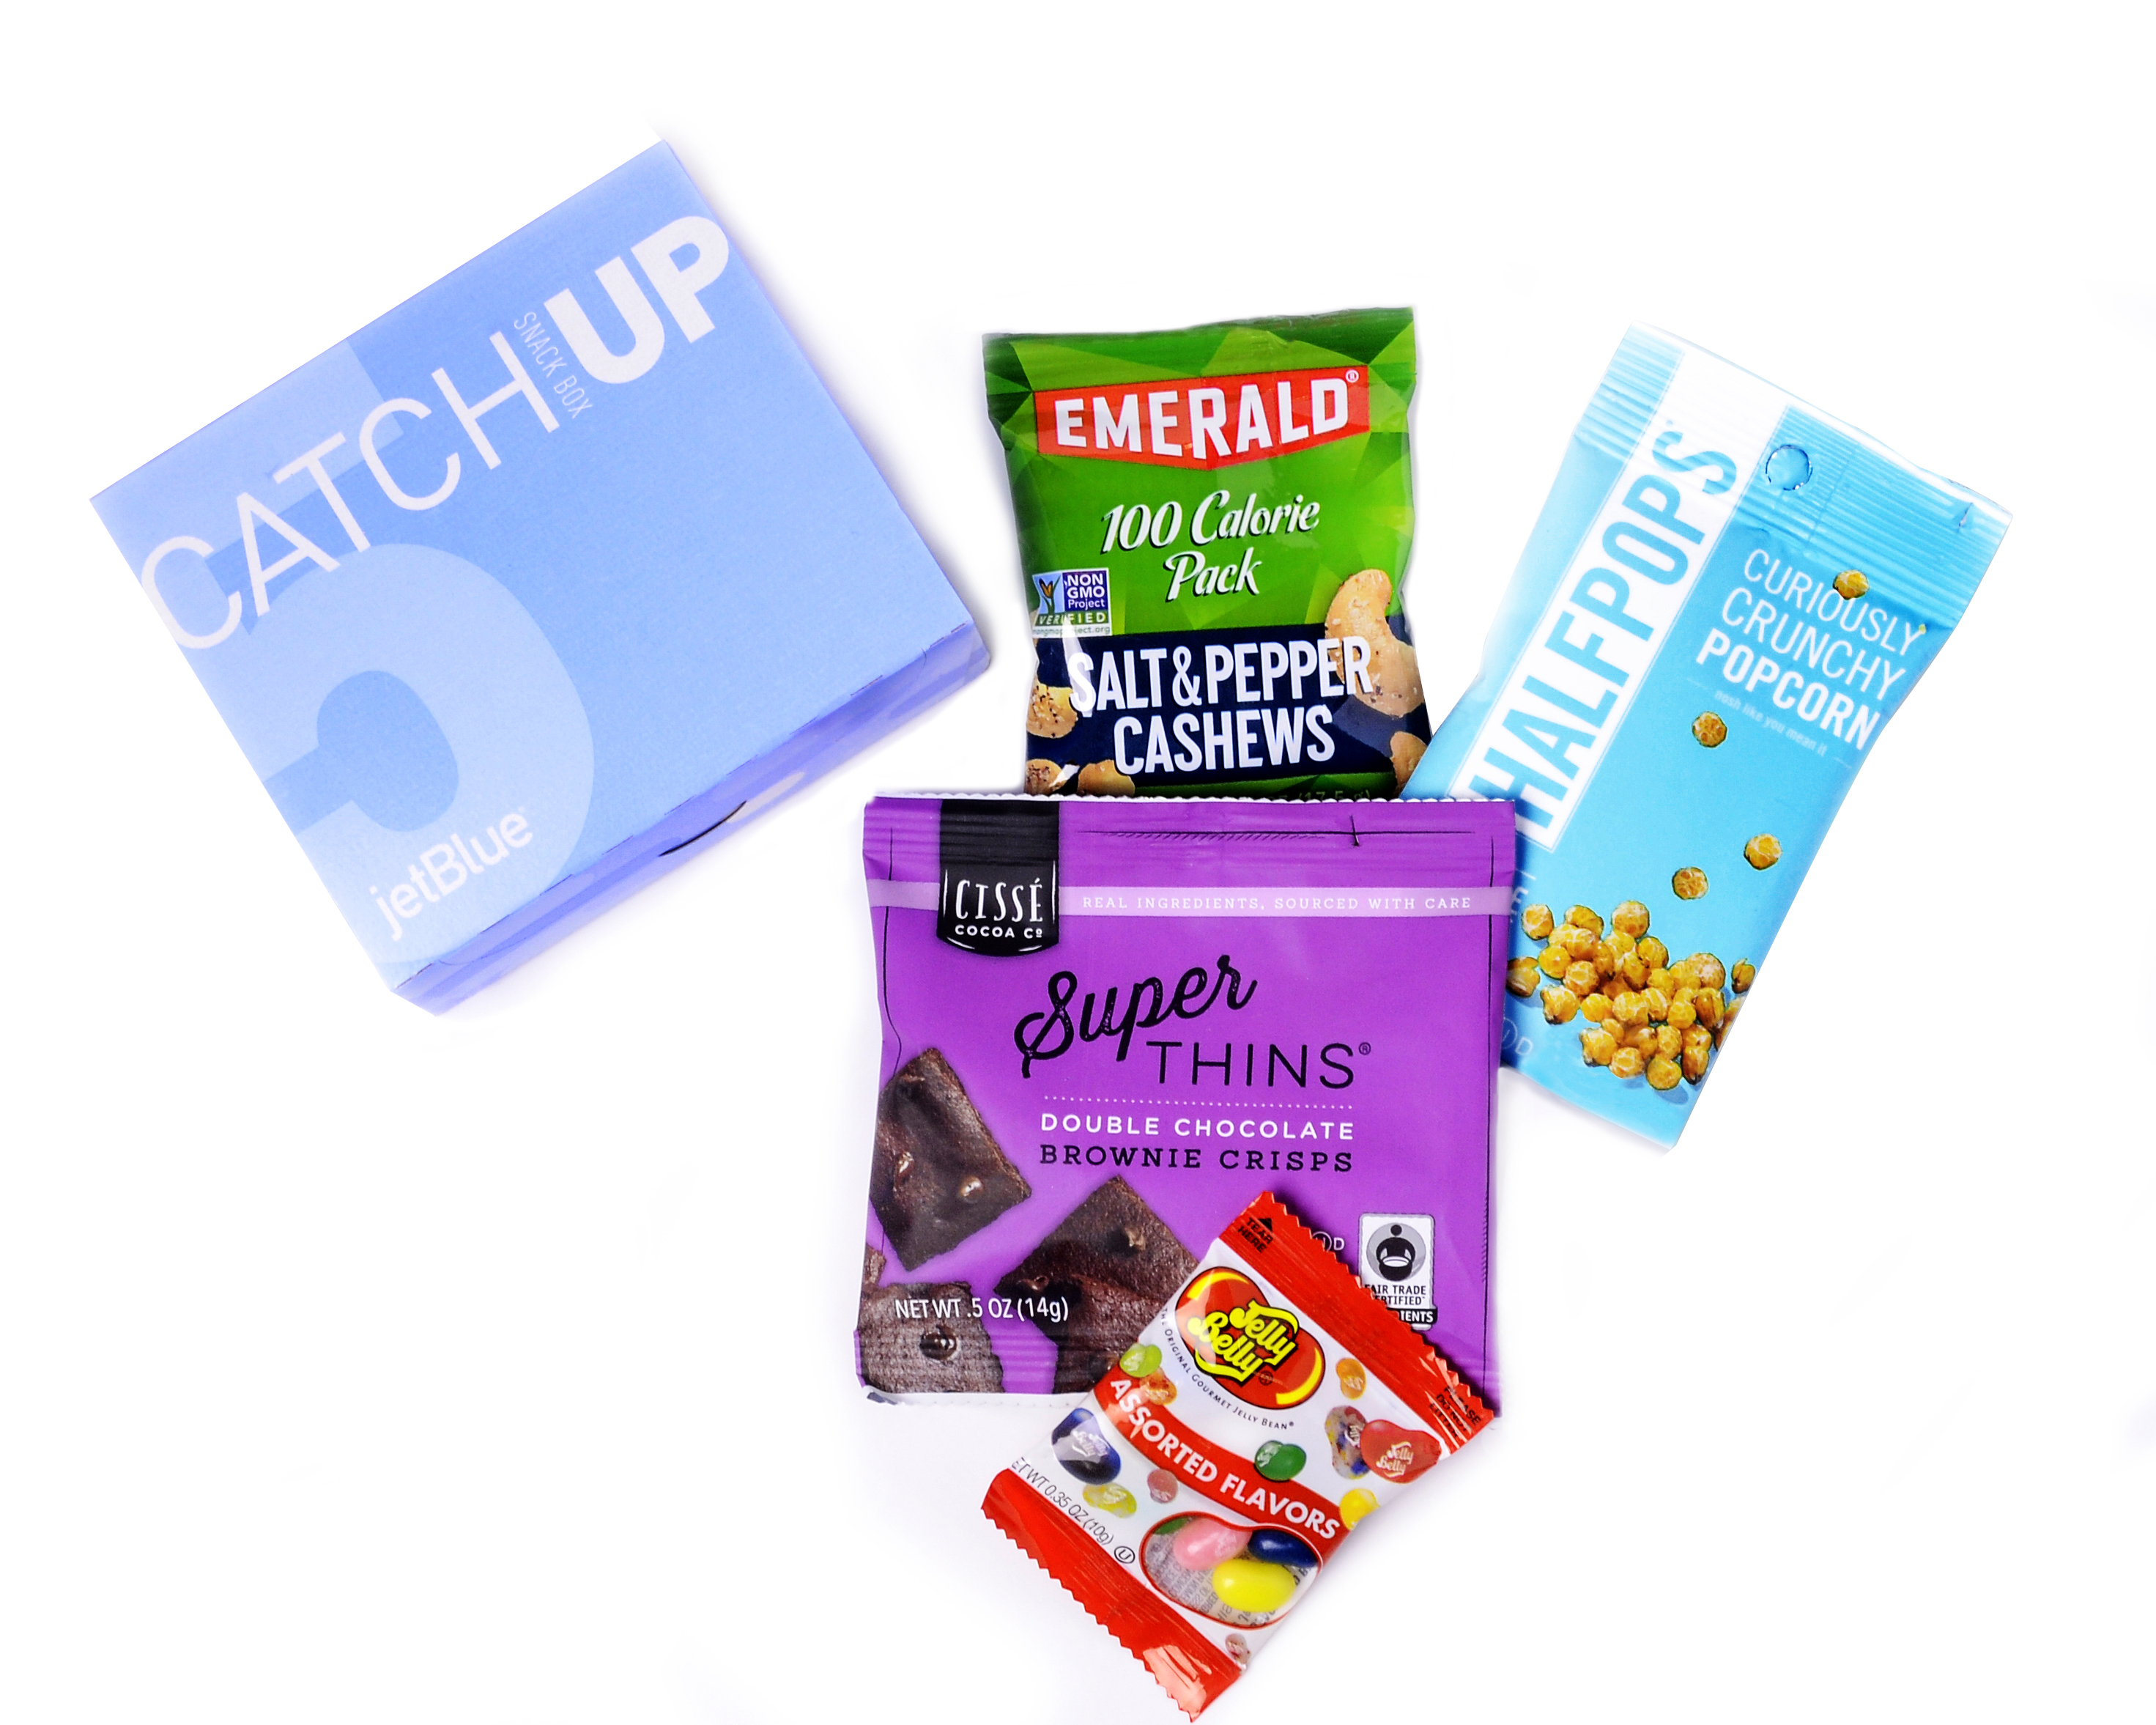 JetBlue's new CatchUp box: Catch up on your favorite shows and the latest blockbusters with these encore-worthy treats, including Emerald® salt and pepper cashews, Halfpops® crunchy popcorn, Cissé Cocoa® brownie crisps and Jelly Belly® jellybeans. (Photo: Business Wire)